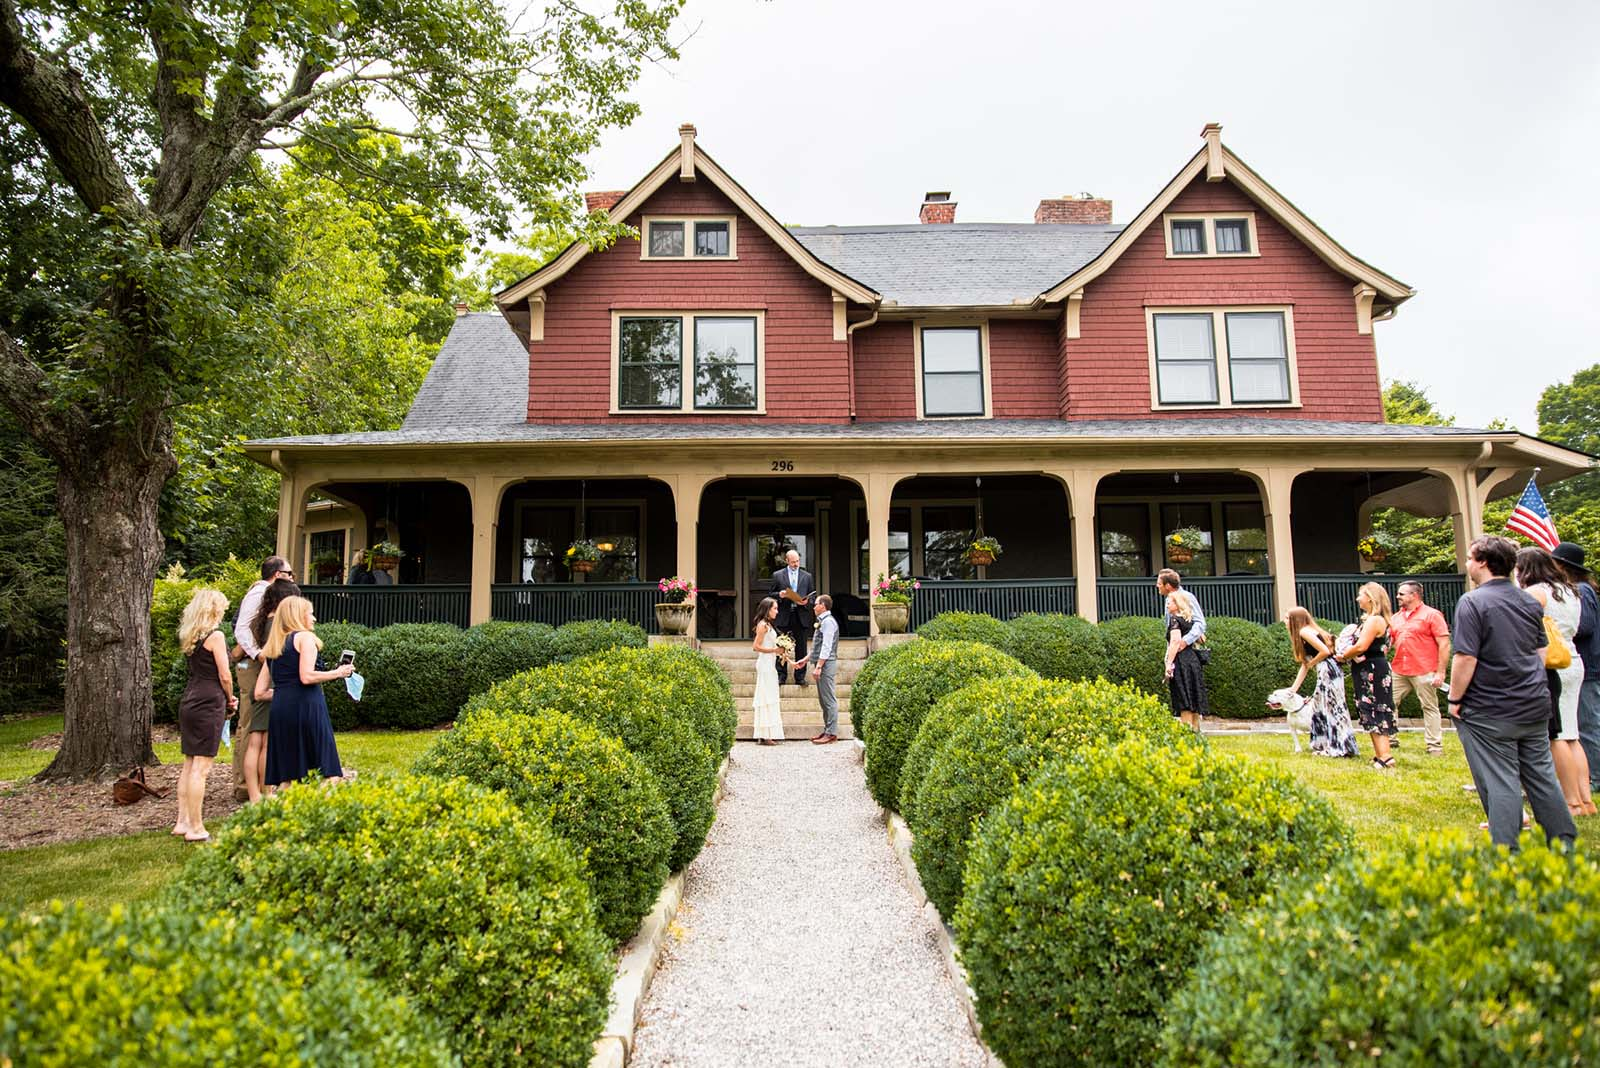 An intimate wedding ceremony at the Asheville bed and breakafst. The couple standing at the feet of the front porch, surrounded by guests scattered across the front yard.